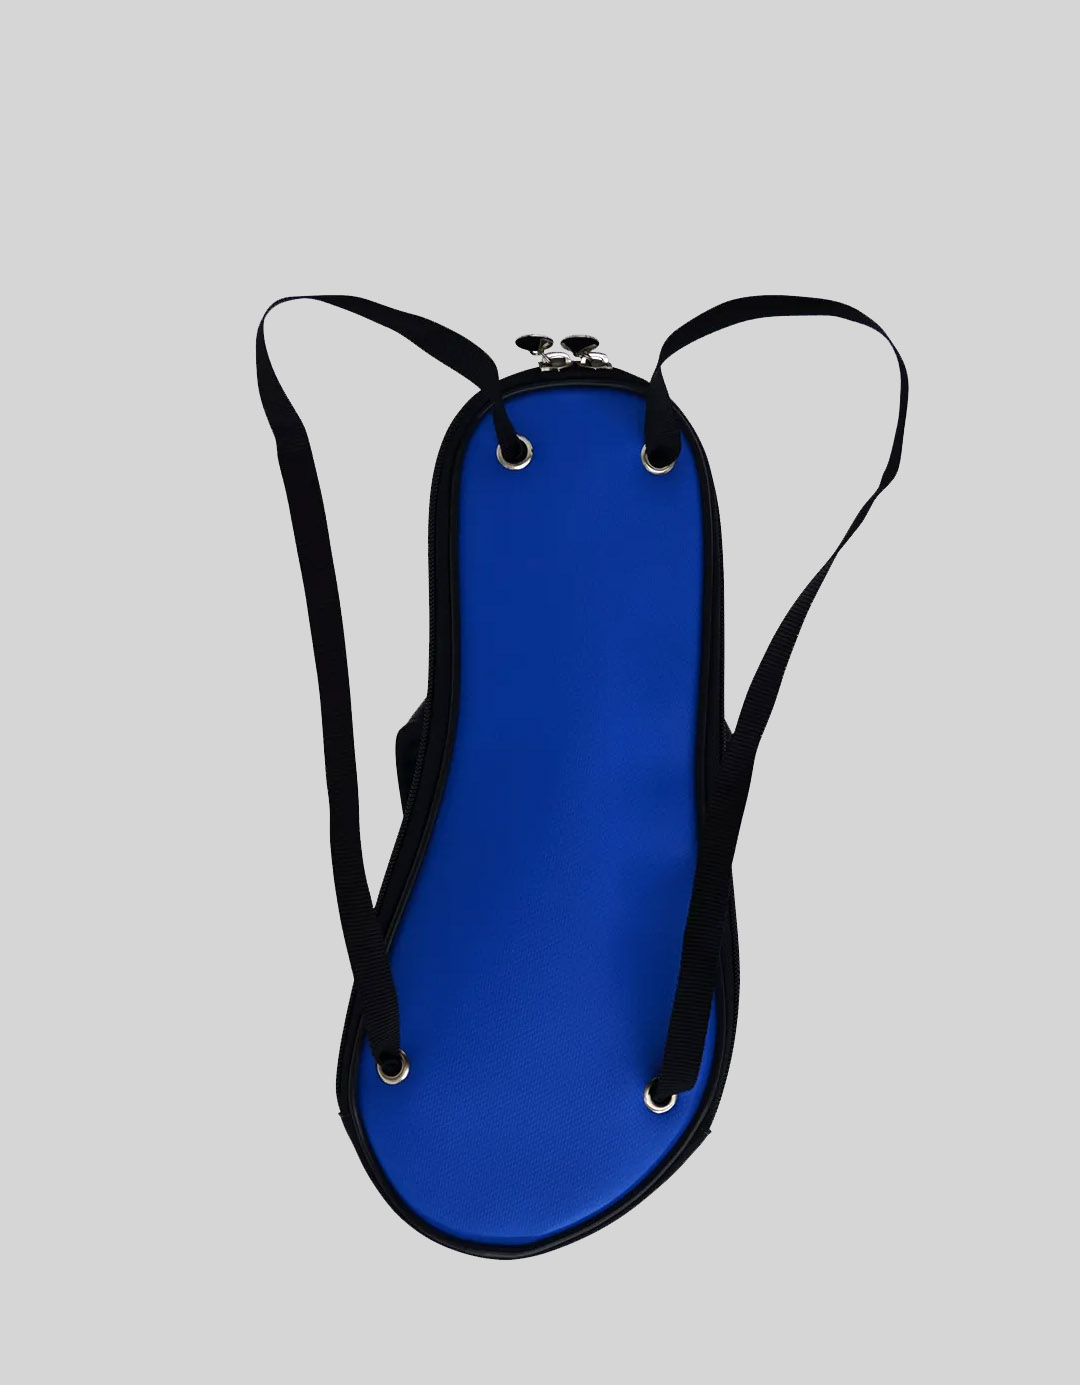 Mochila Divertida Azul Exclusiva Chinelo